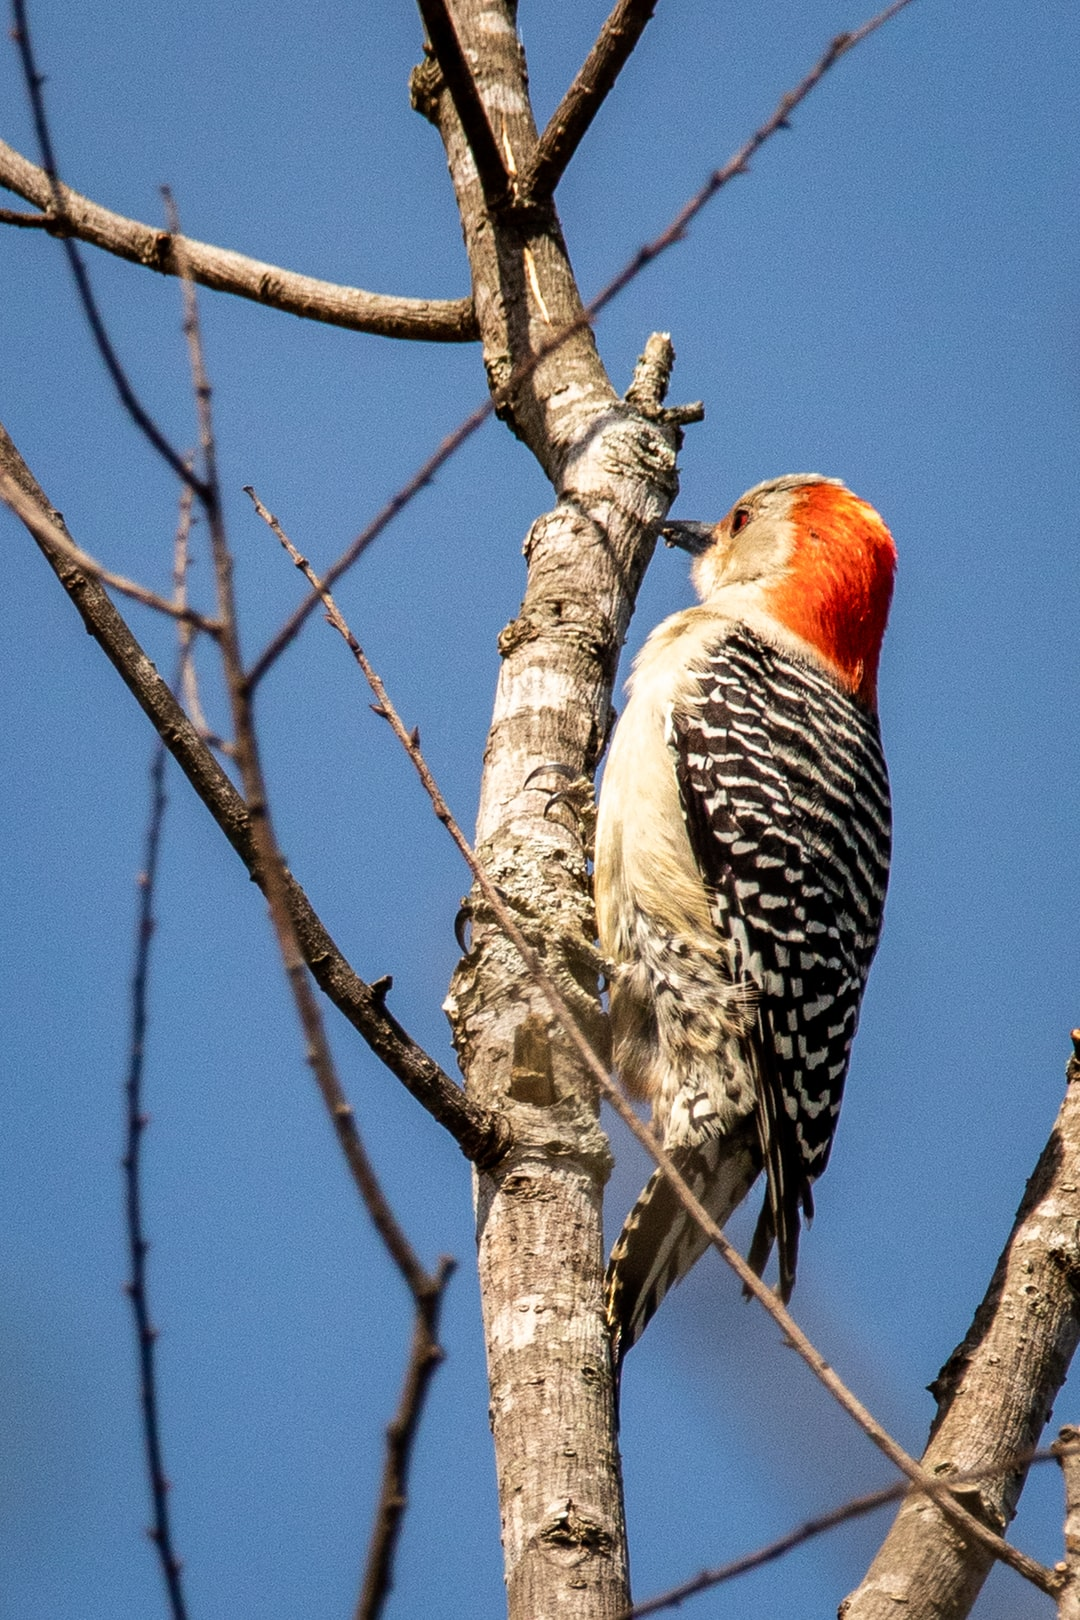 A female red-bellied woodpecker in a tree at the Hatchie National Wildlife Refuge.